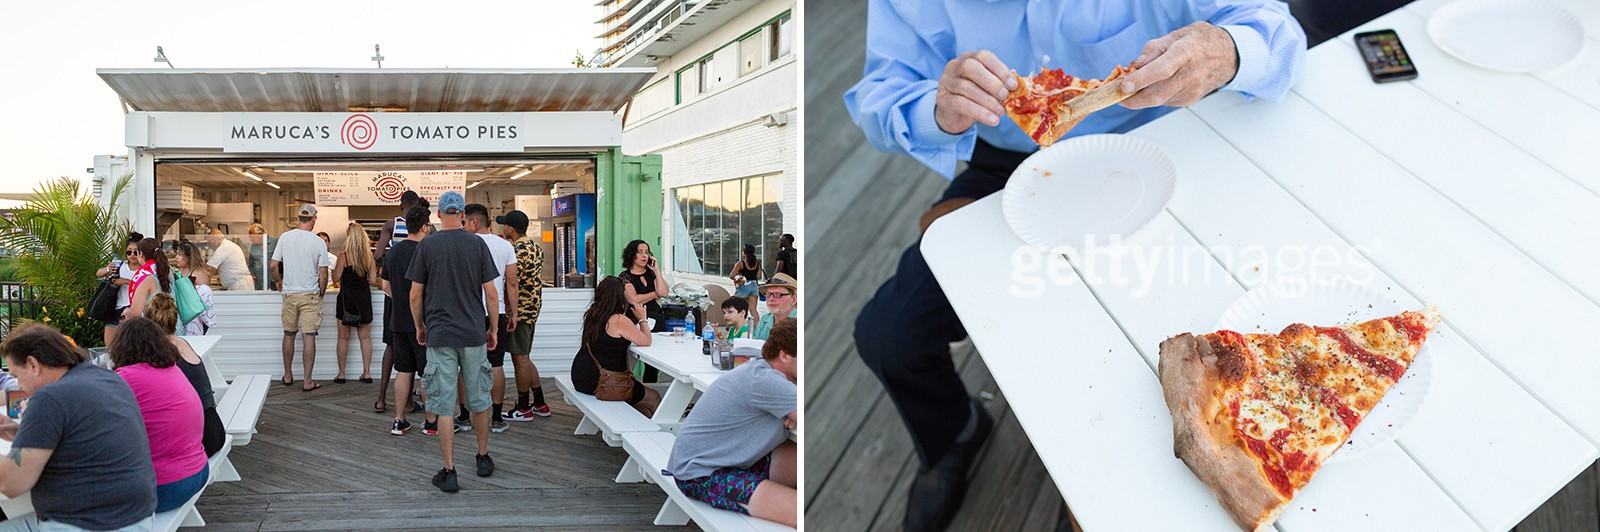 asbury park boardwalk pizza